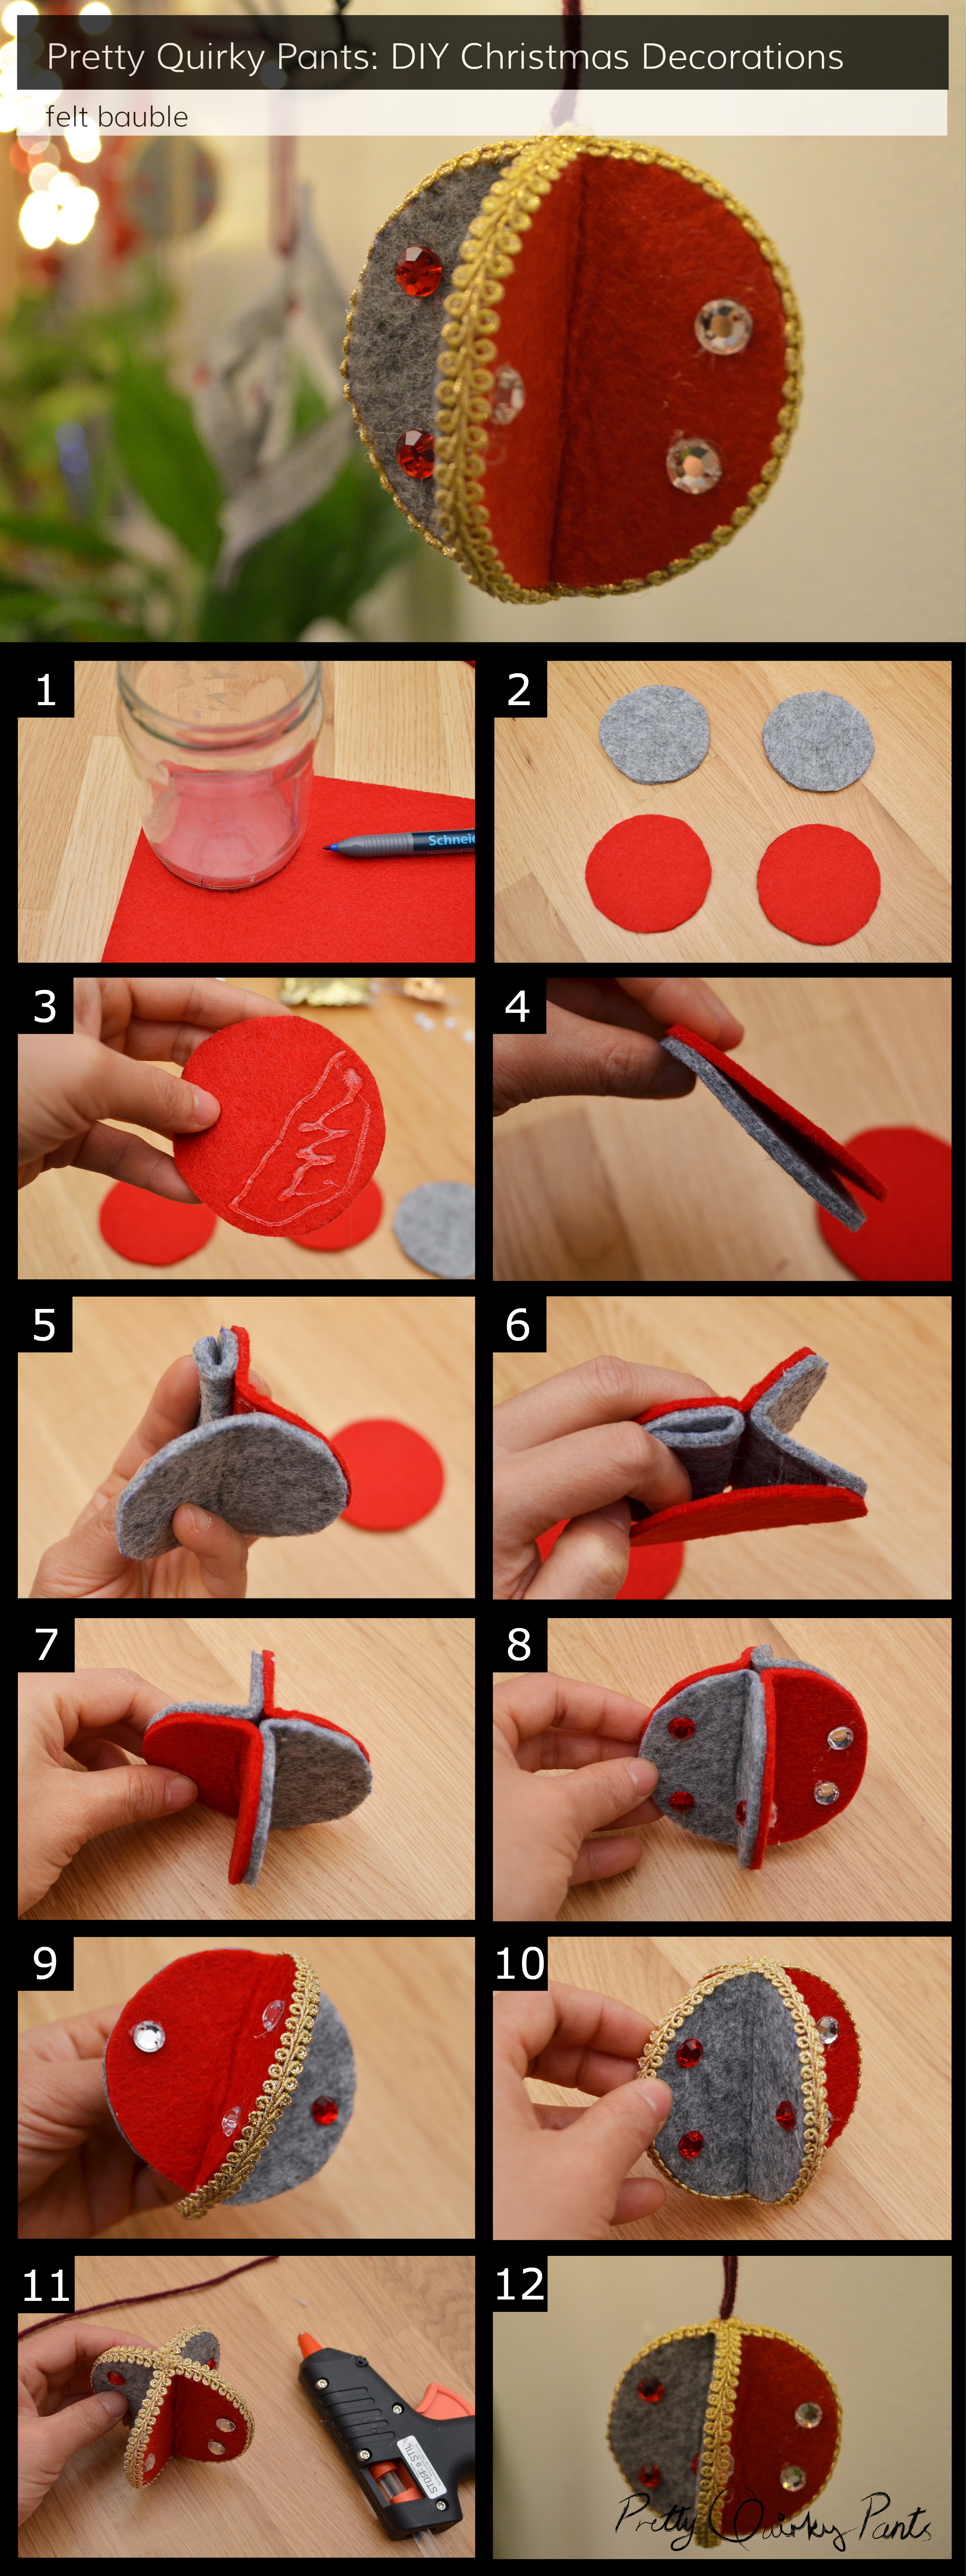 instructions-diy-felt-bauble-christmas-decor